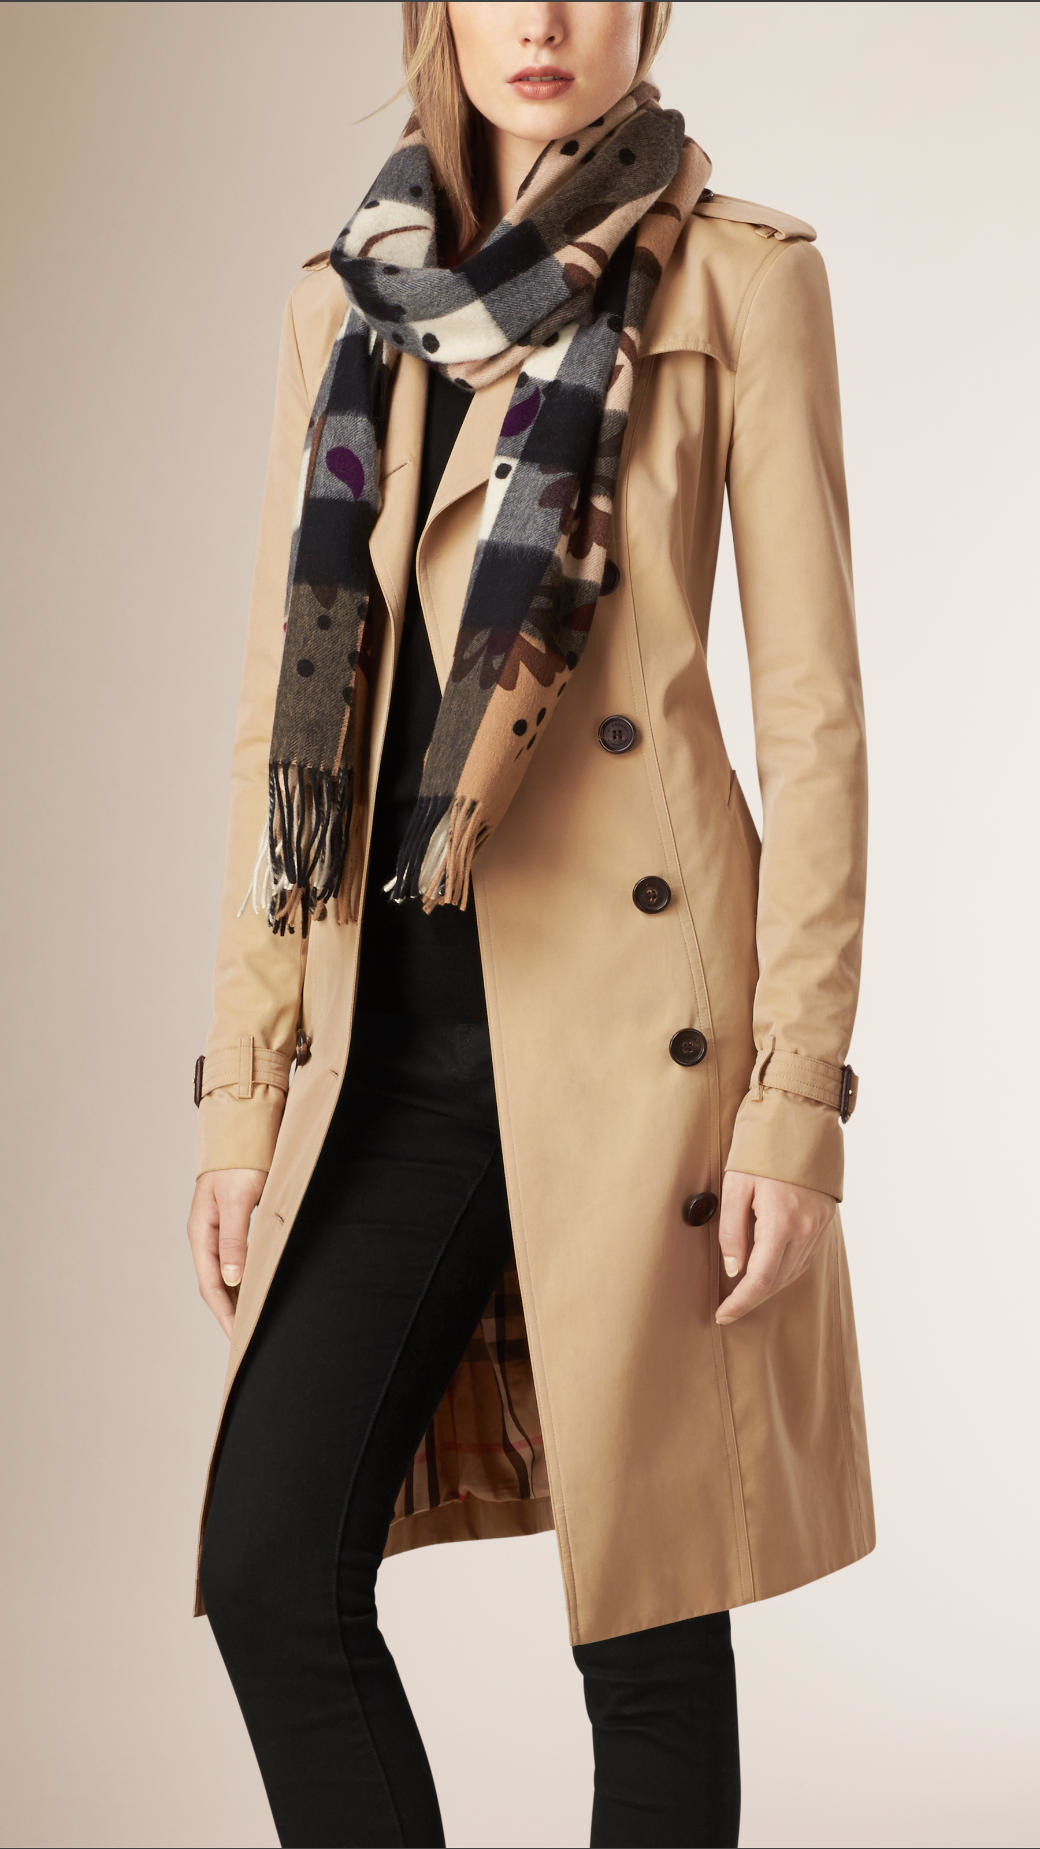 f9e2e39baee1 ... promo code for lyst burberry floral print check cashmere scarf in pink  564df 9ea91 ...